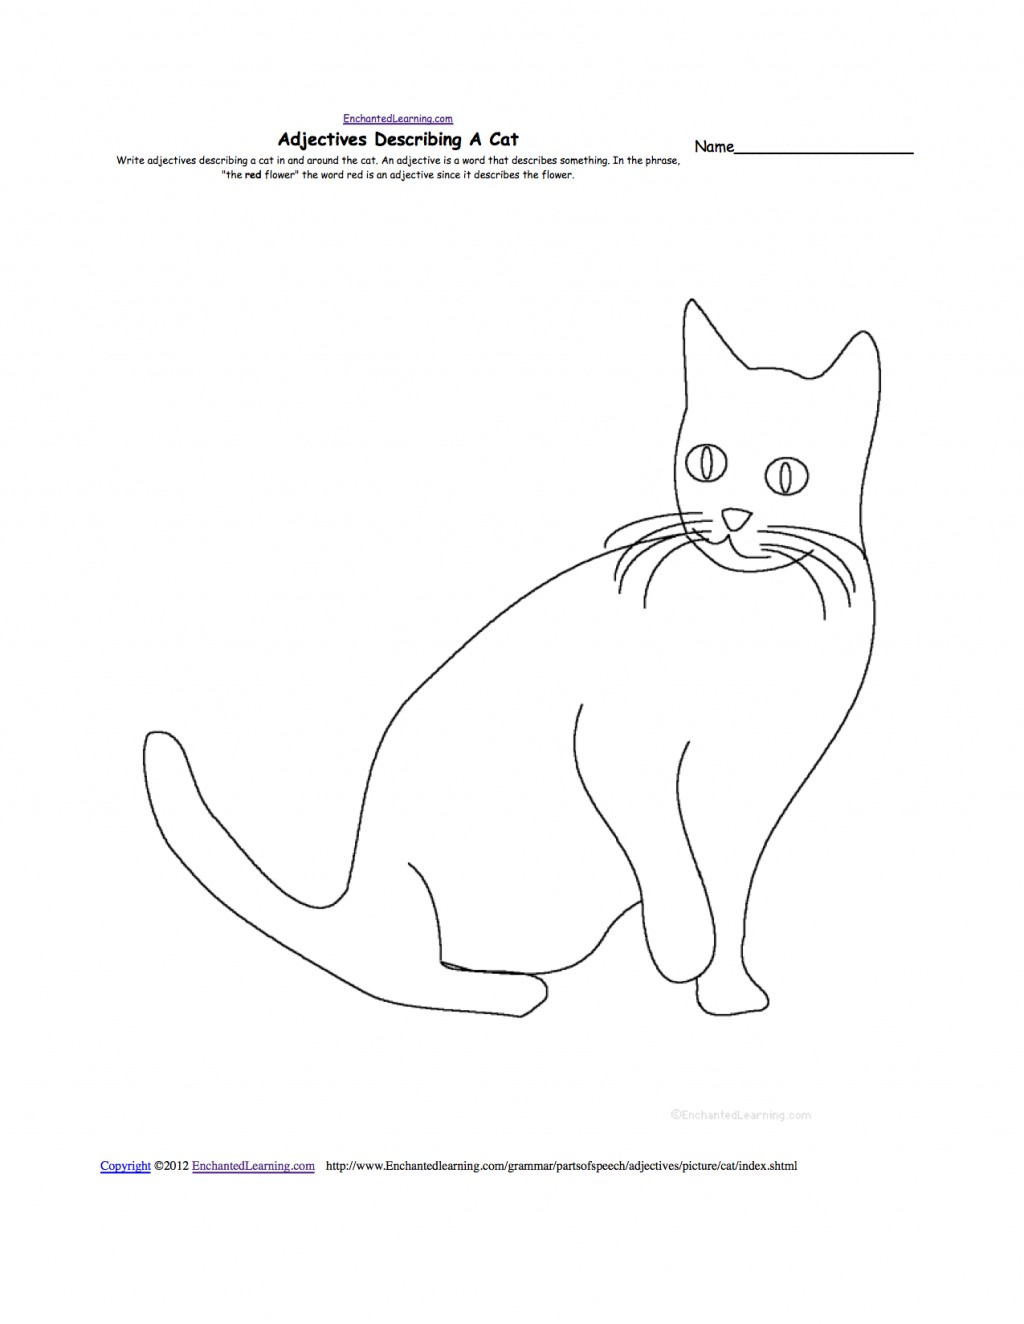 016 Pet Animal Cat Essay Cats And Dogs Compare Contrast Pets Writing Worksheets Com Vine Catadjec My In Hindi Topics Dreaded Favorite English Tamil Large